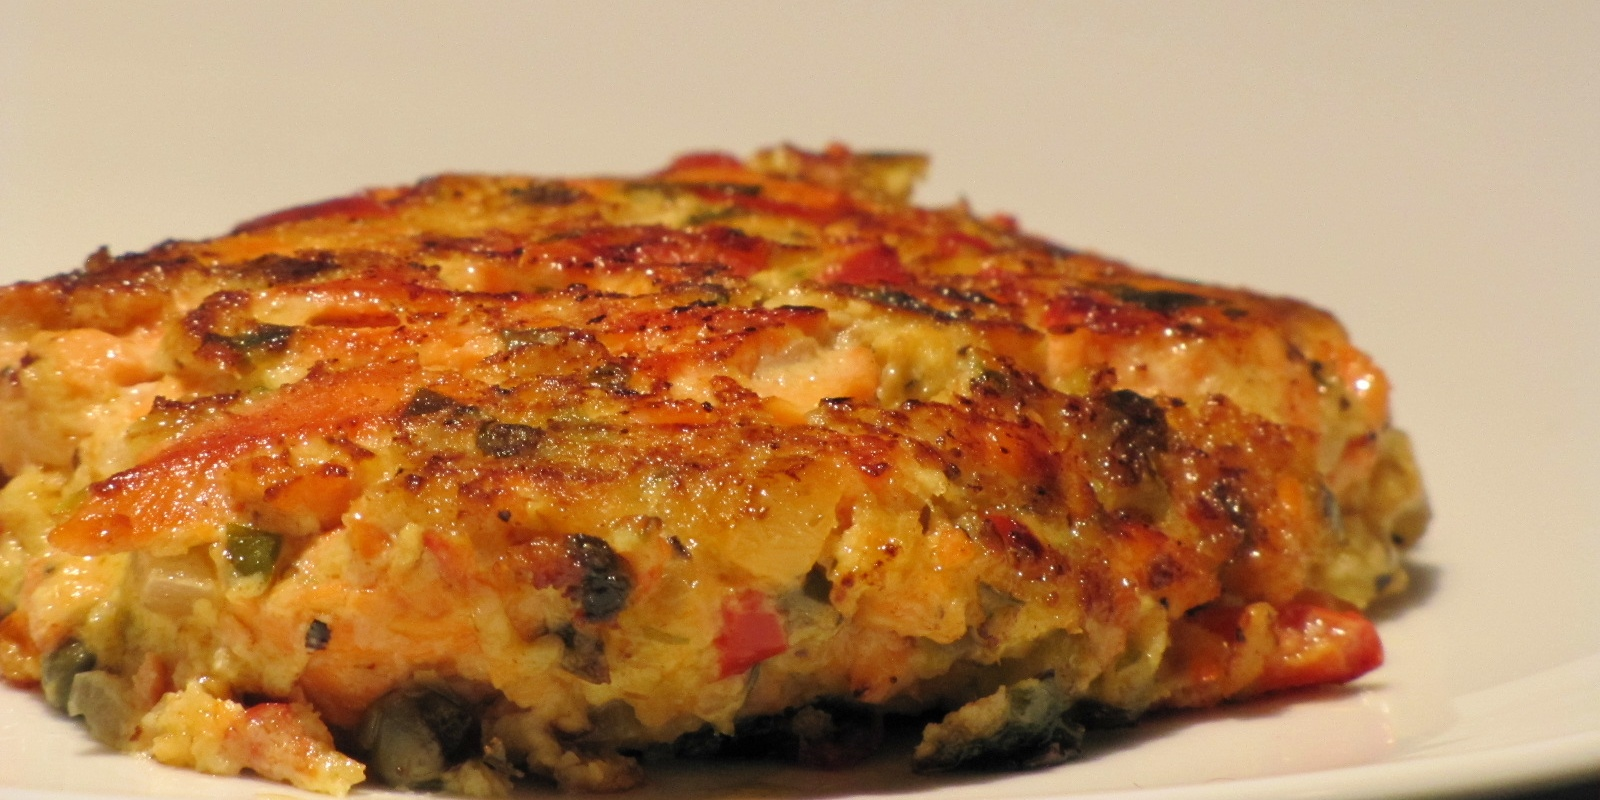 What Goes Well With Maryland Crab Cakes